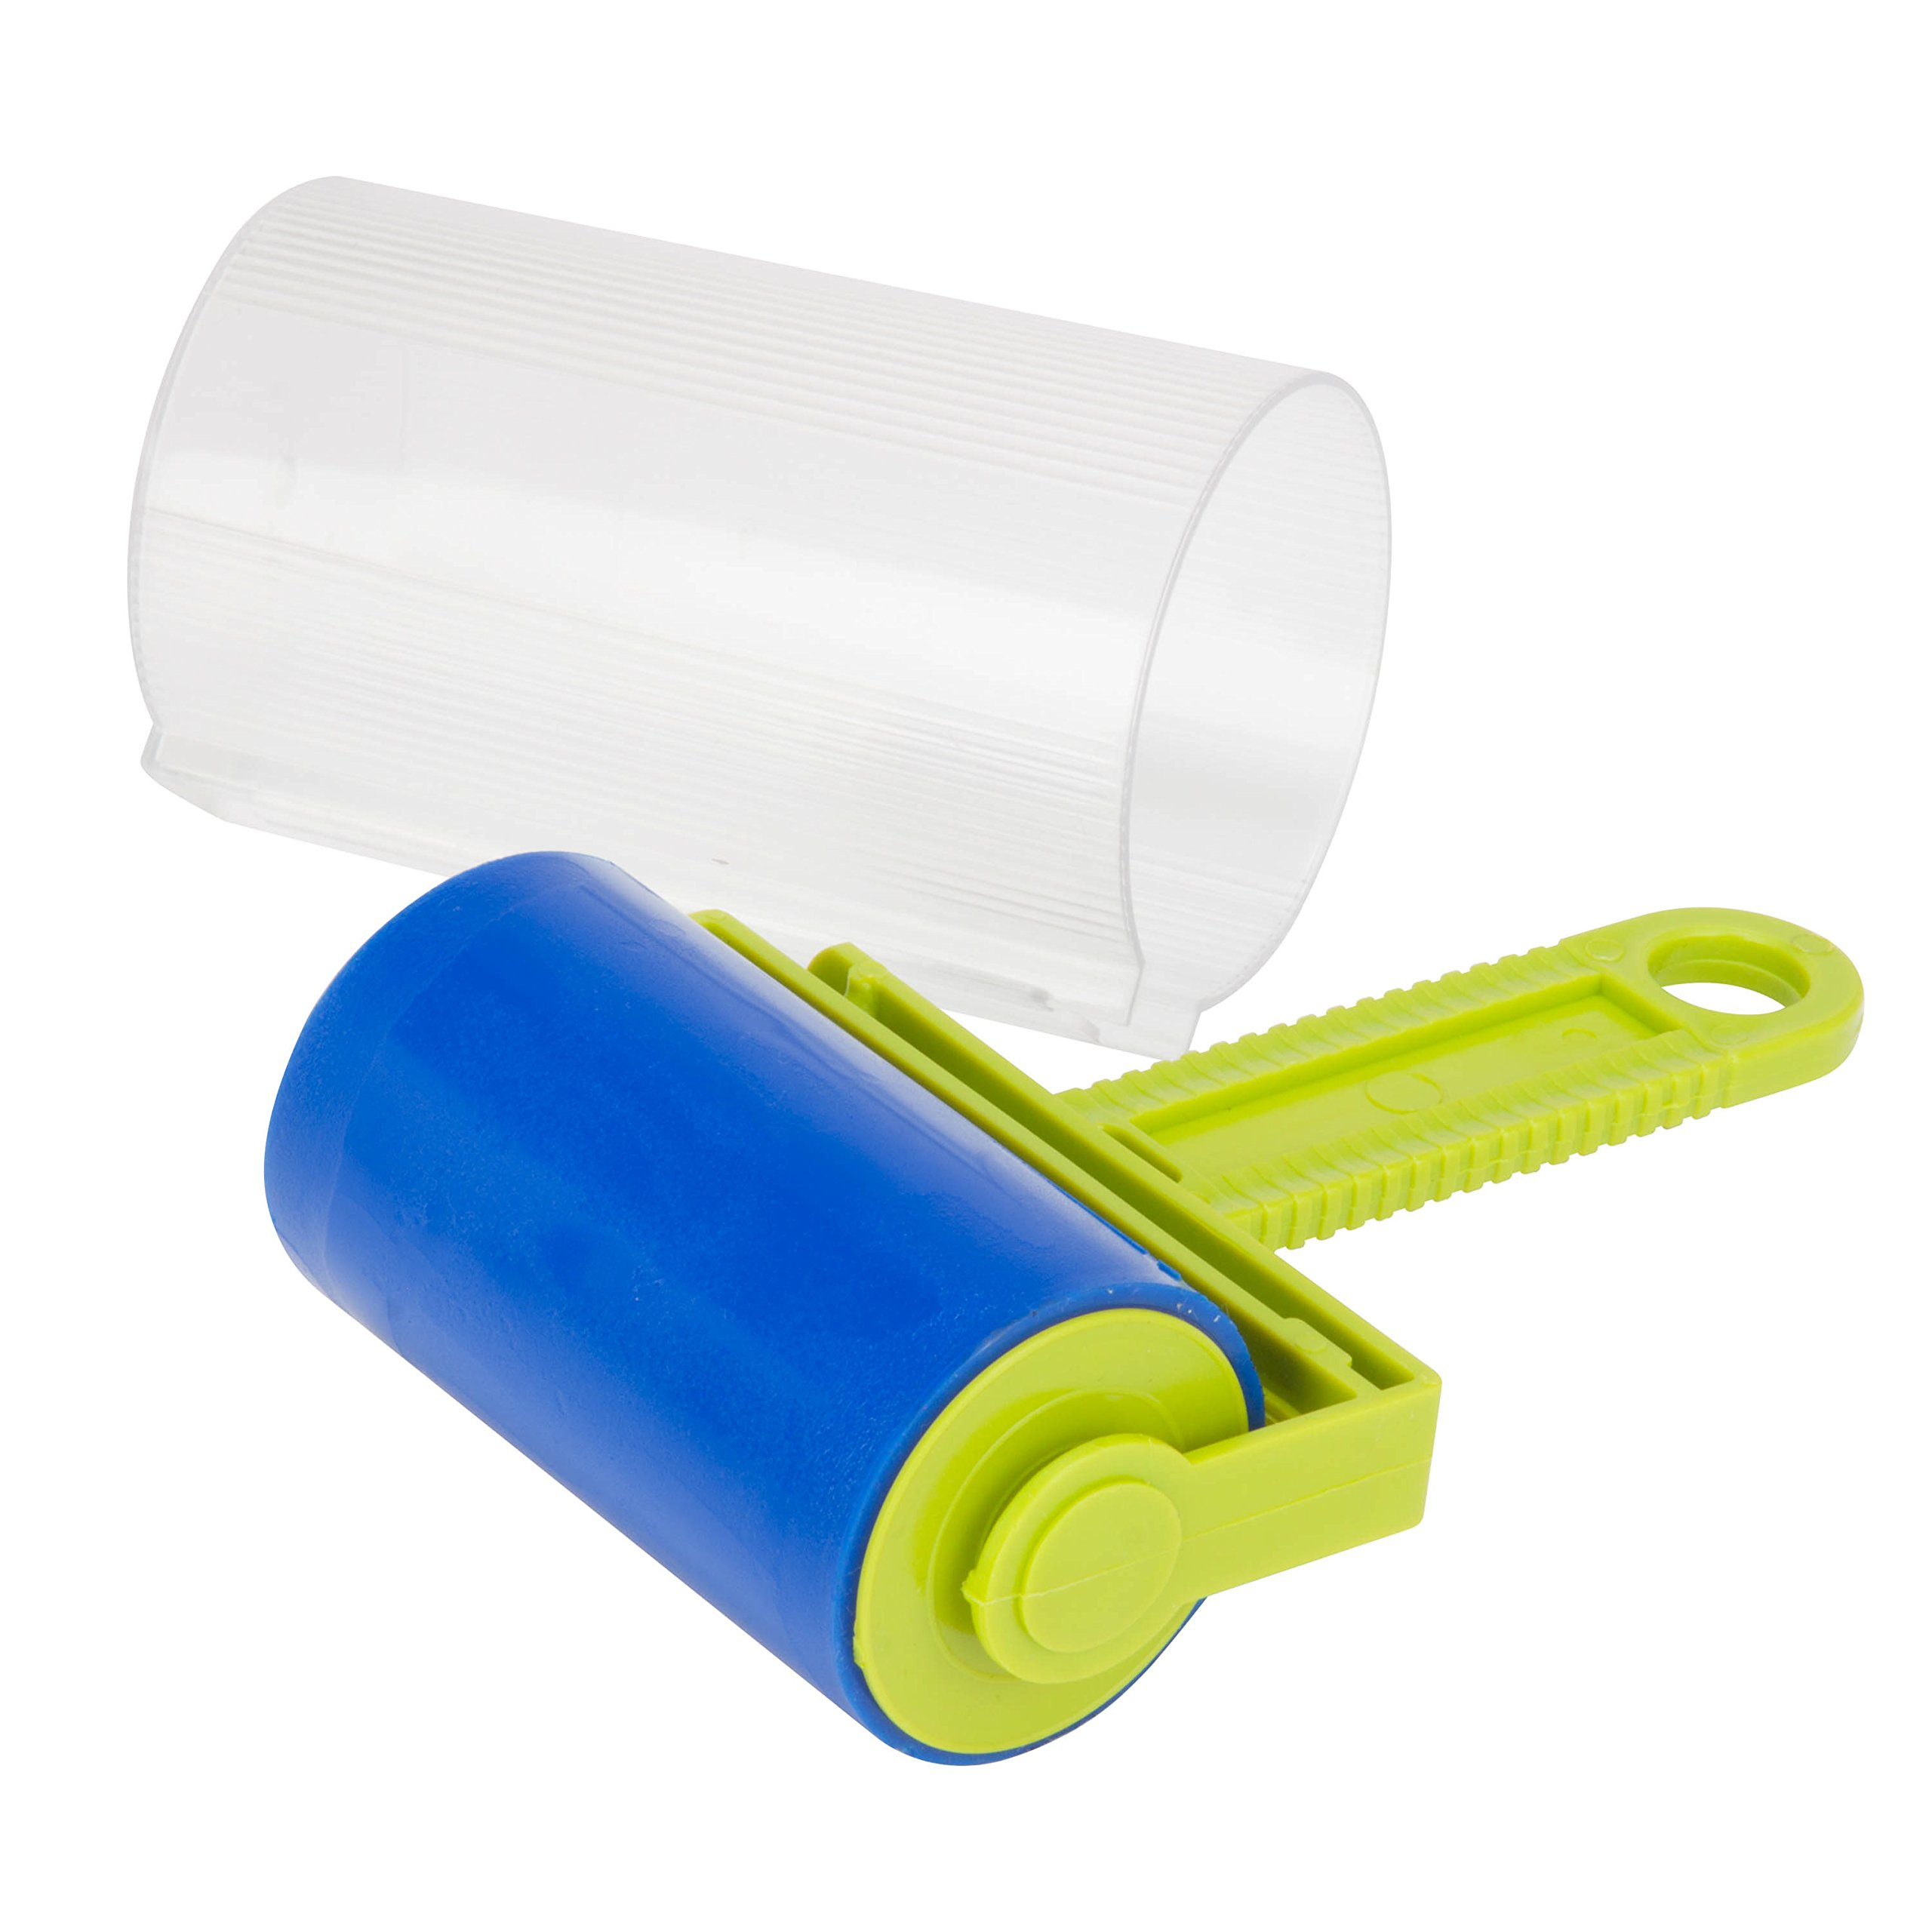 Honey-Can-Do LNT-06512 Rinse and Reuse Wide Travel Lint Roller with Cover